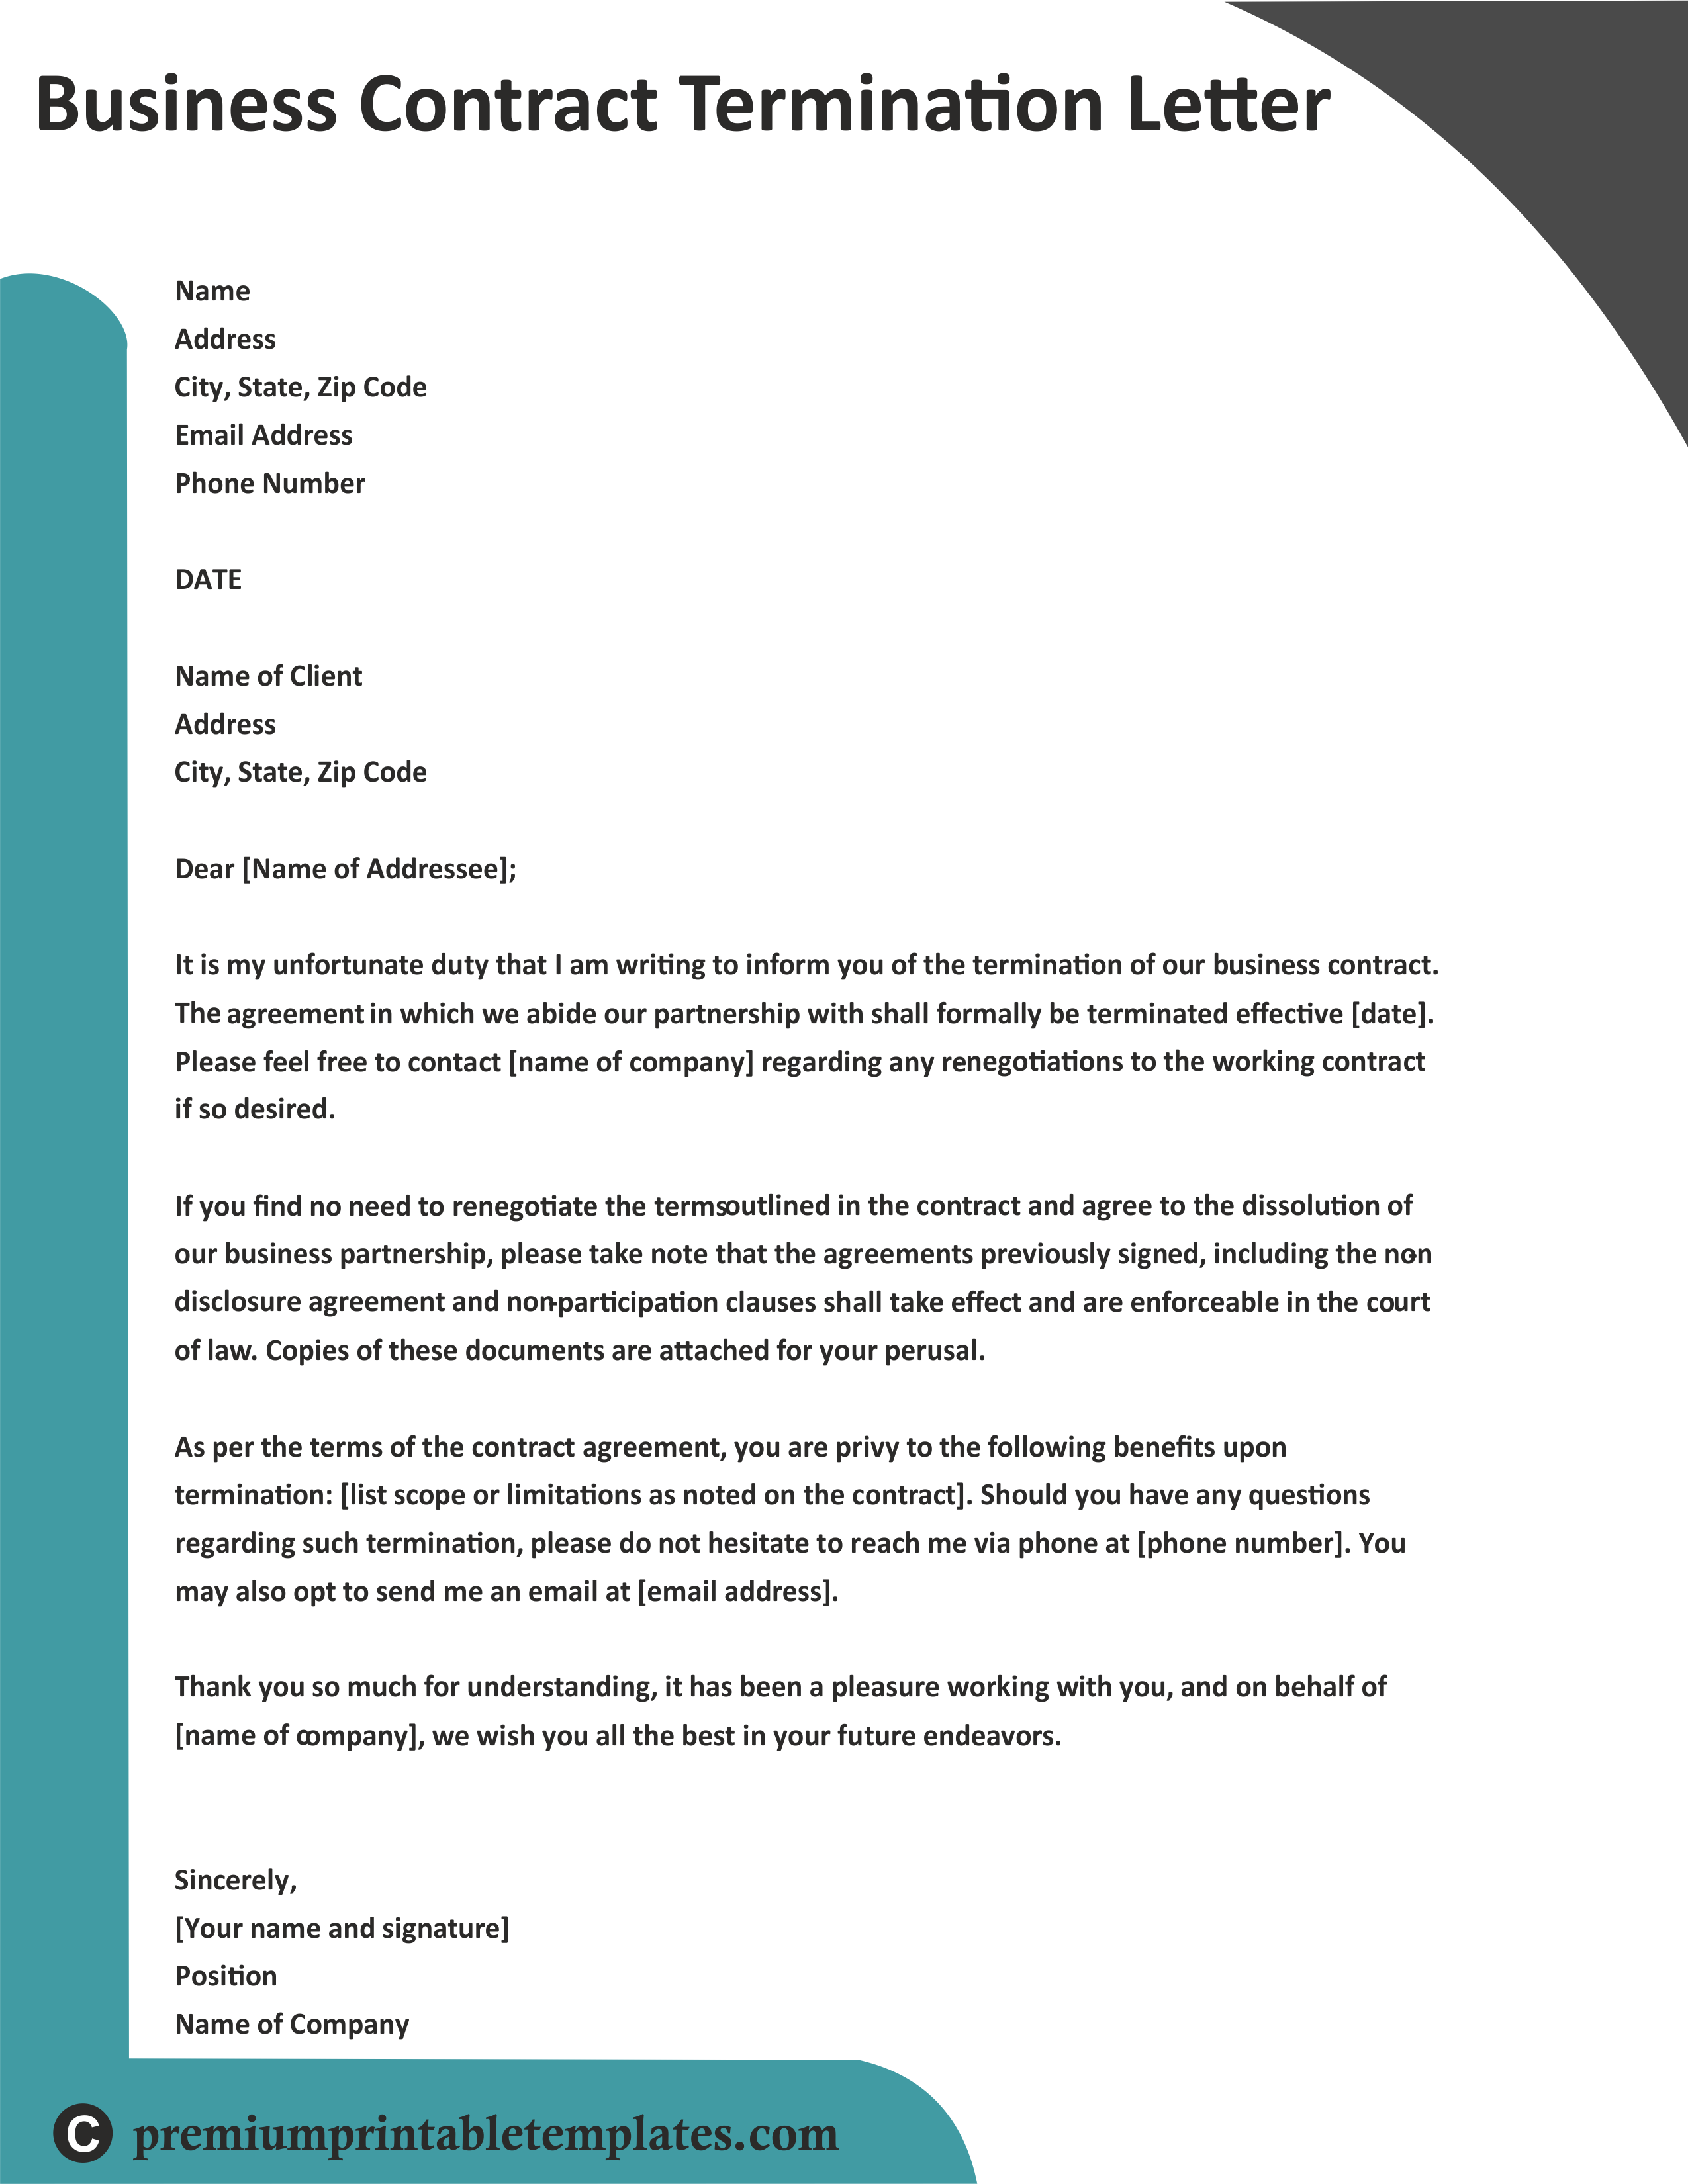 Template Business Contract Termination Letter